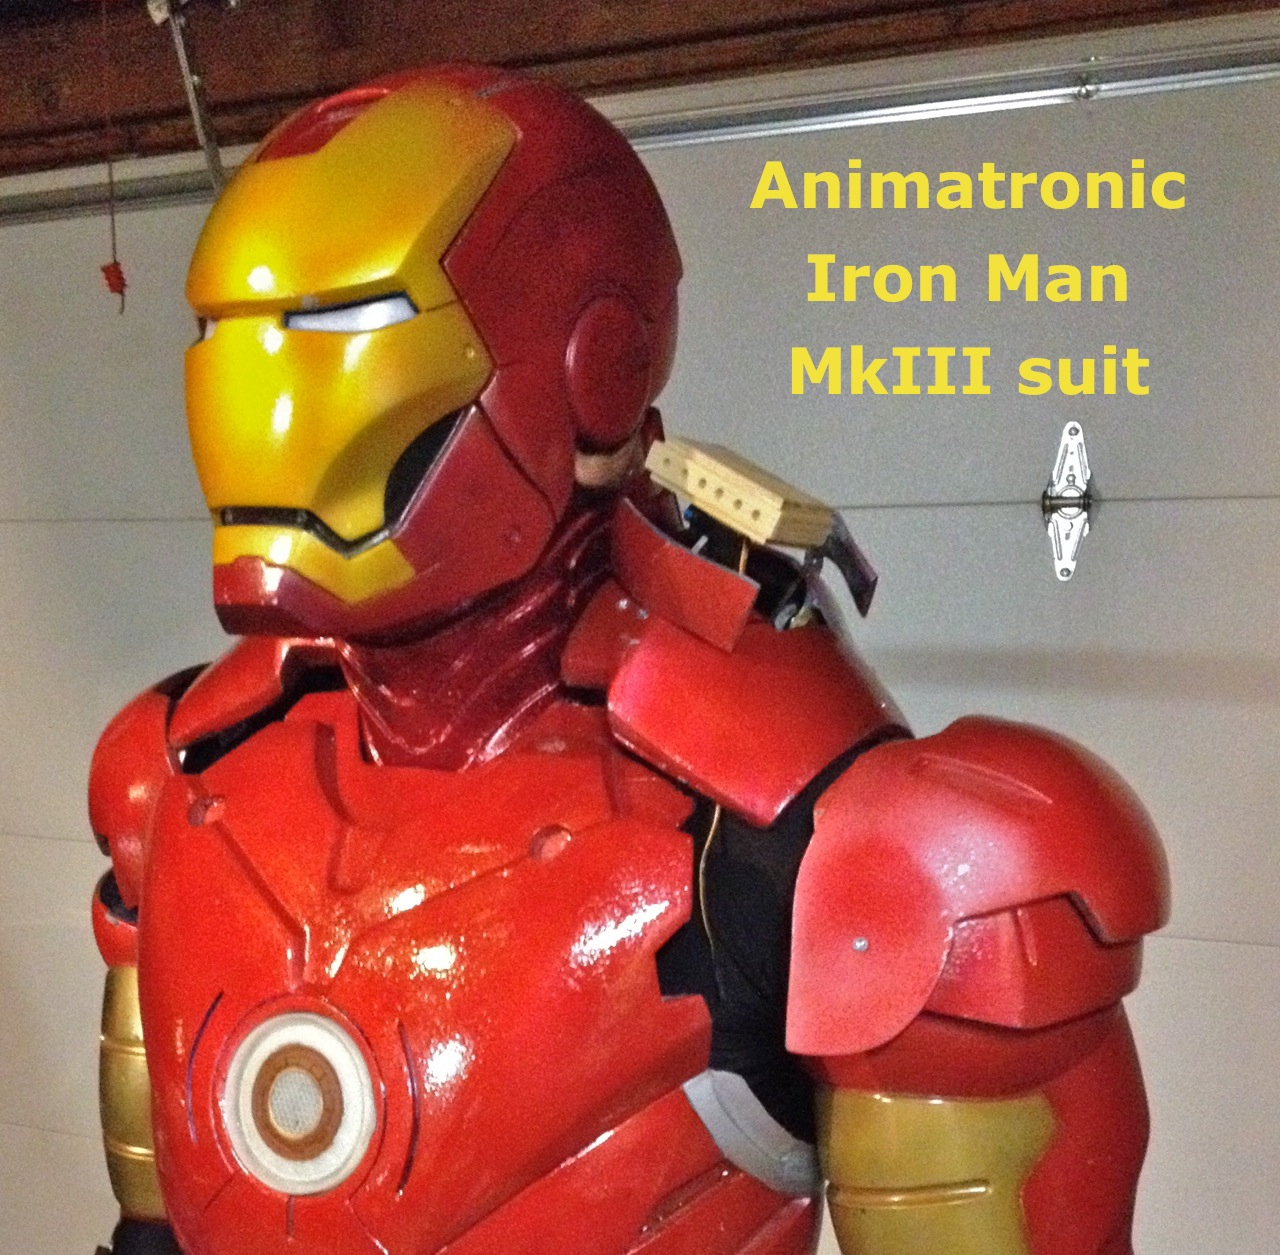 Animatronic Iron Man Mk III suit